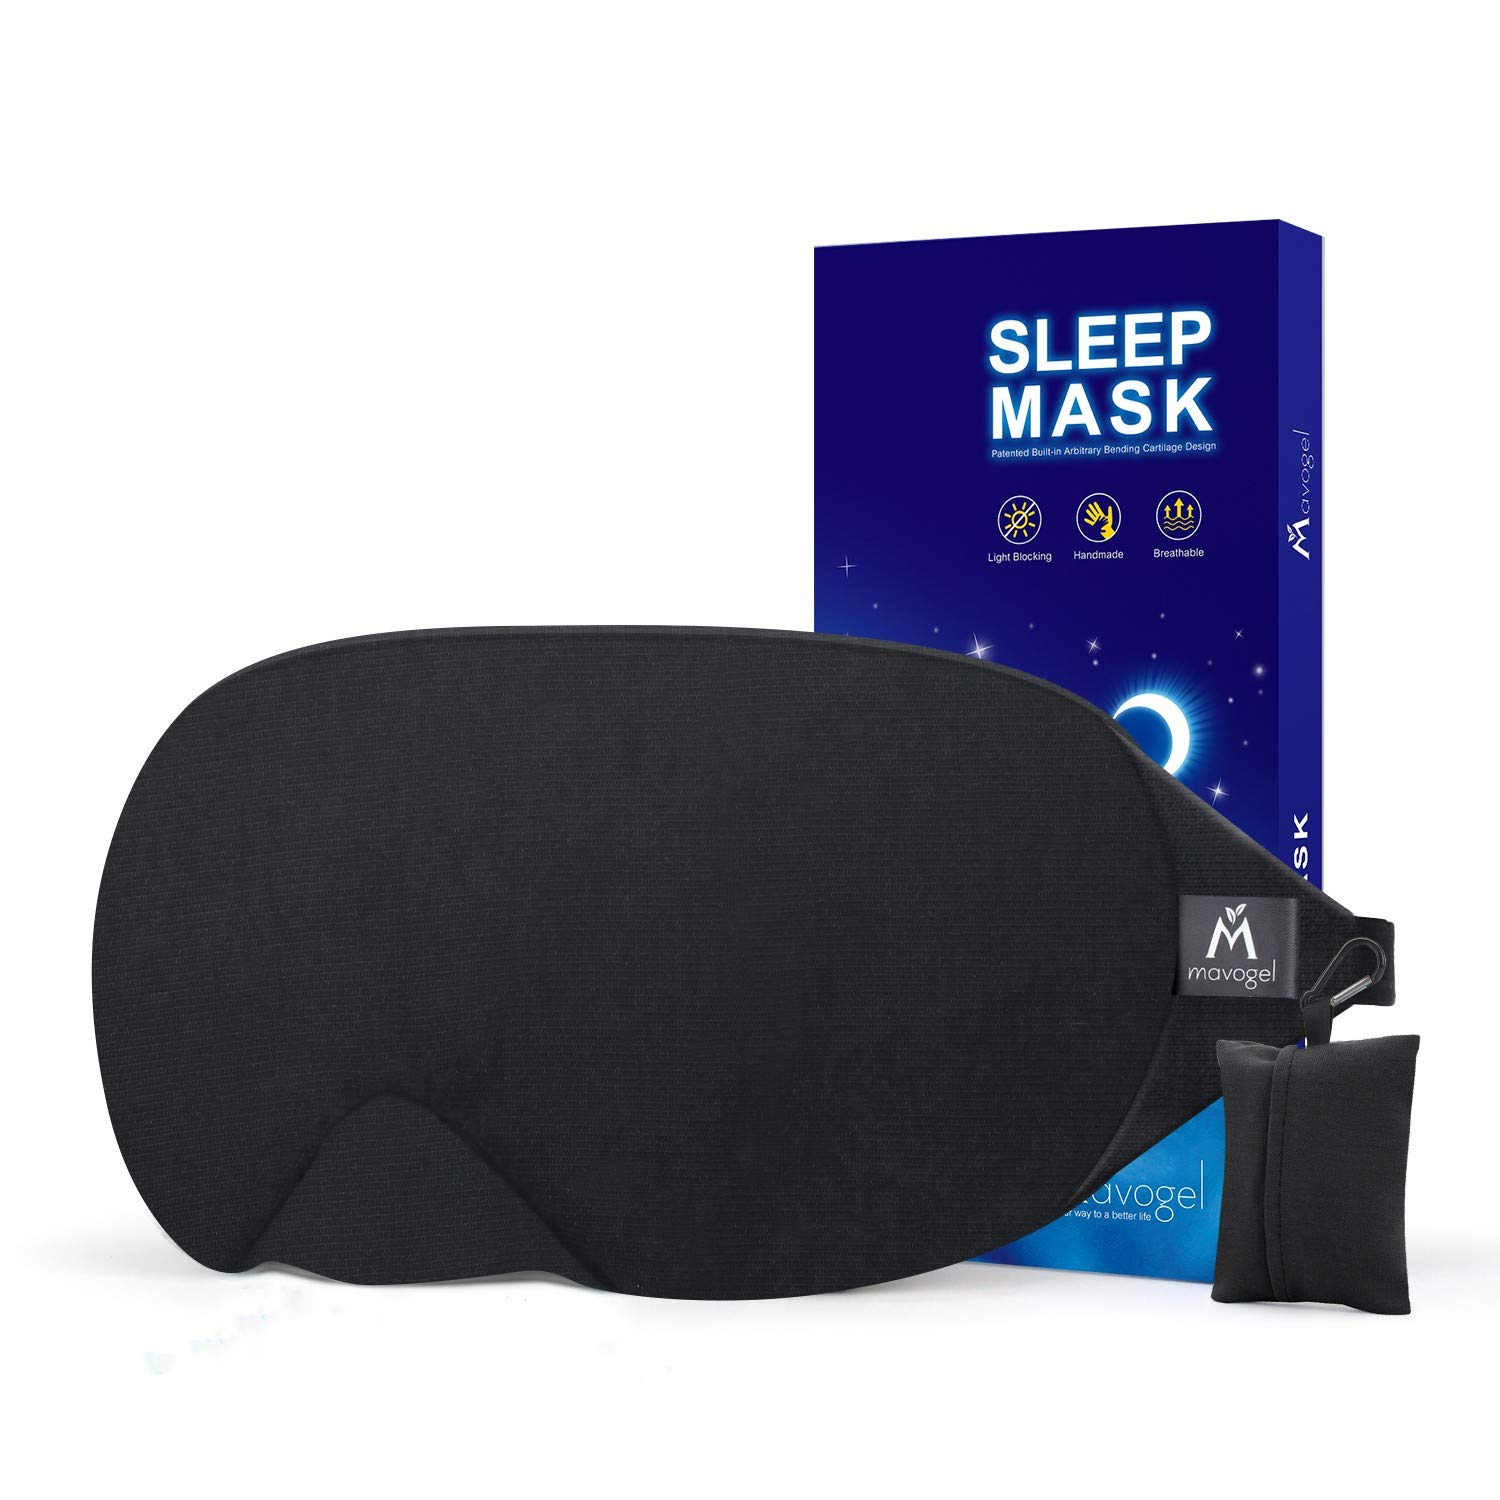 Mavogel Cotton Sleep Eye Mask - Updated Design Light Blocking Sleep Mask, Soft and Comfortable Night Eye Mask for Men Women, Eye Blinder for Travel/Sleeping/Shift Work, Includes Travel Pouch, Black